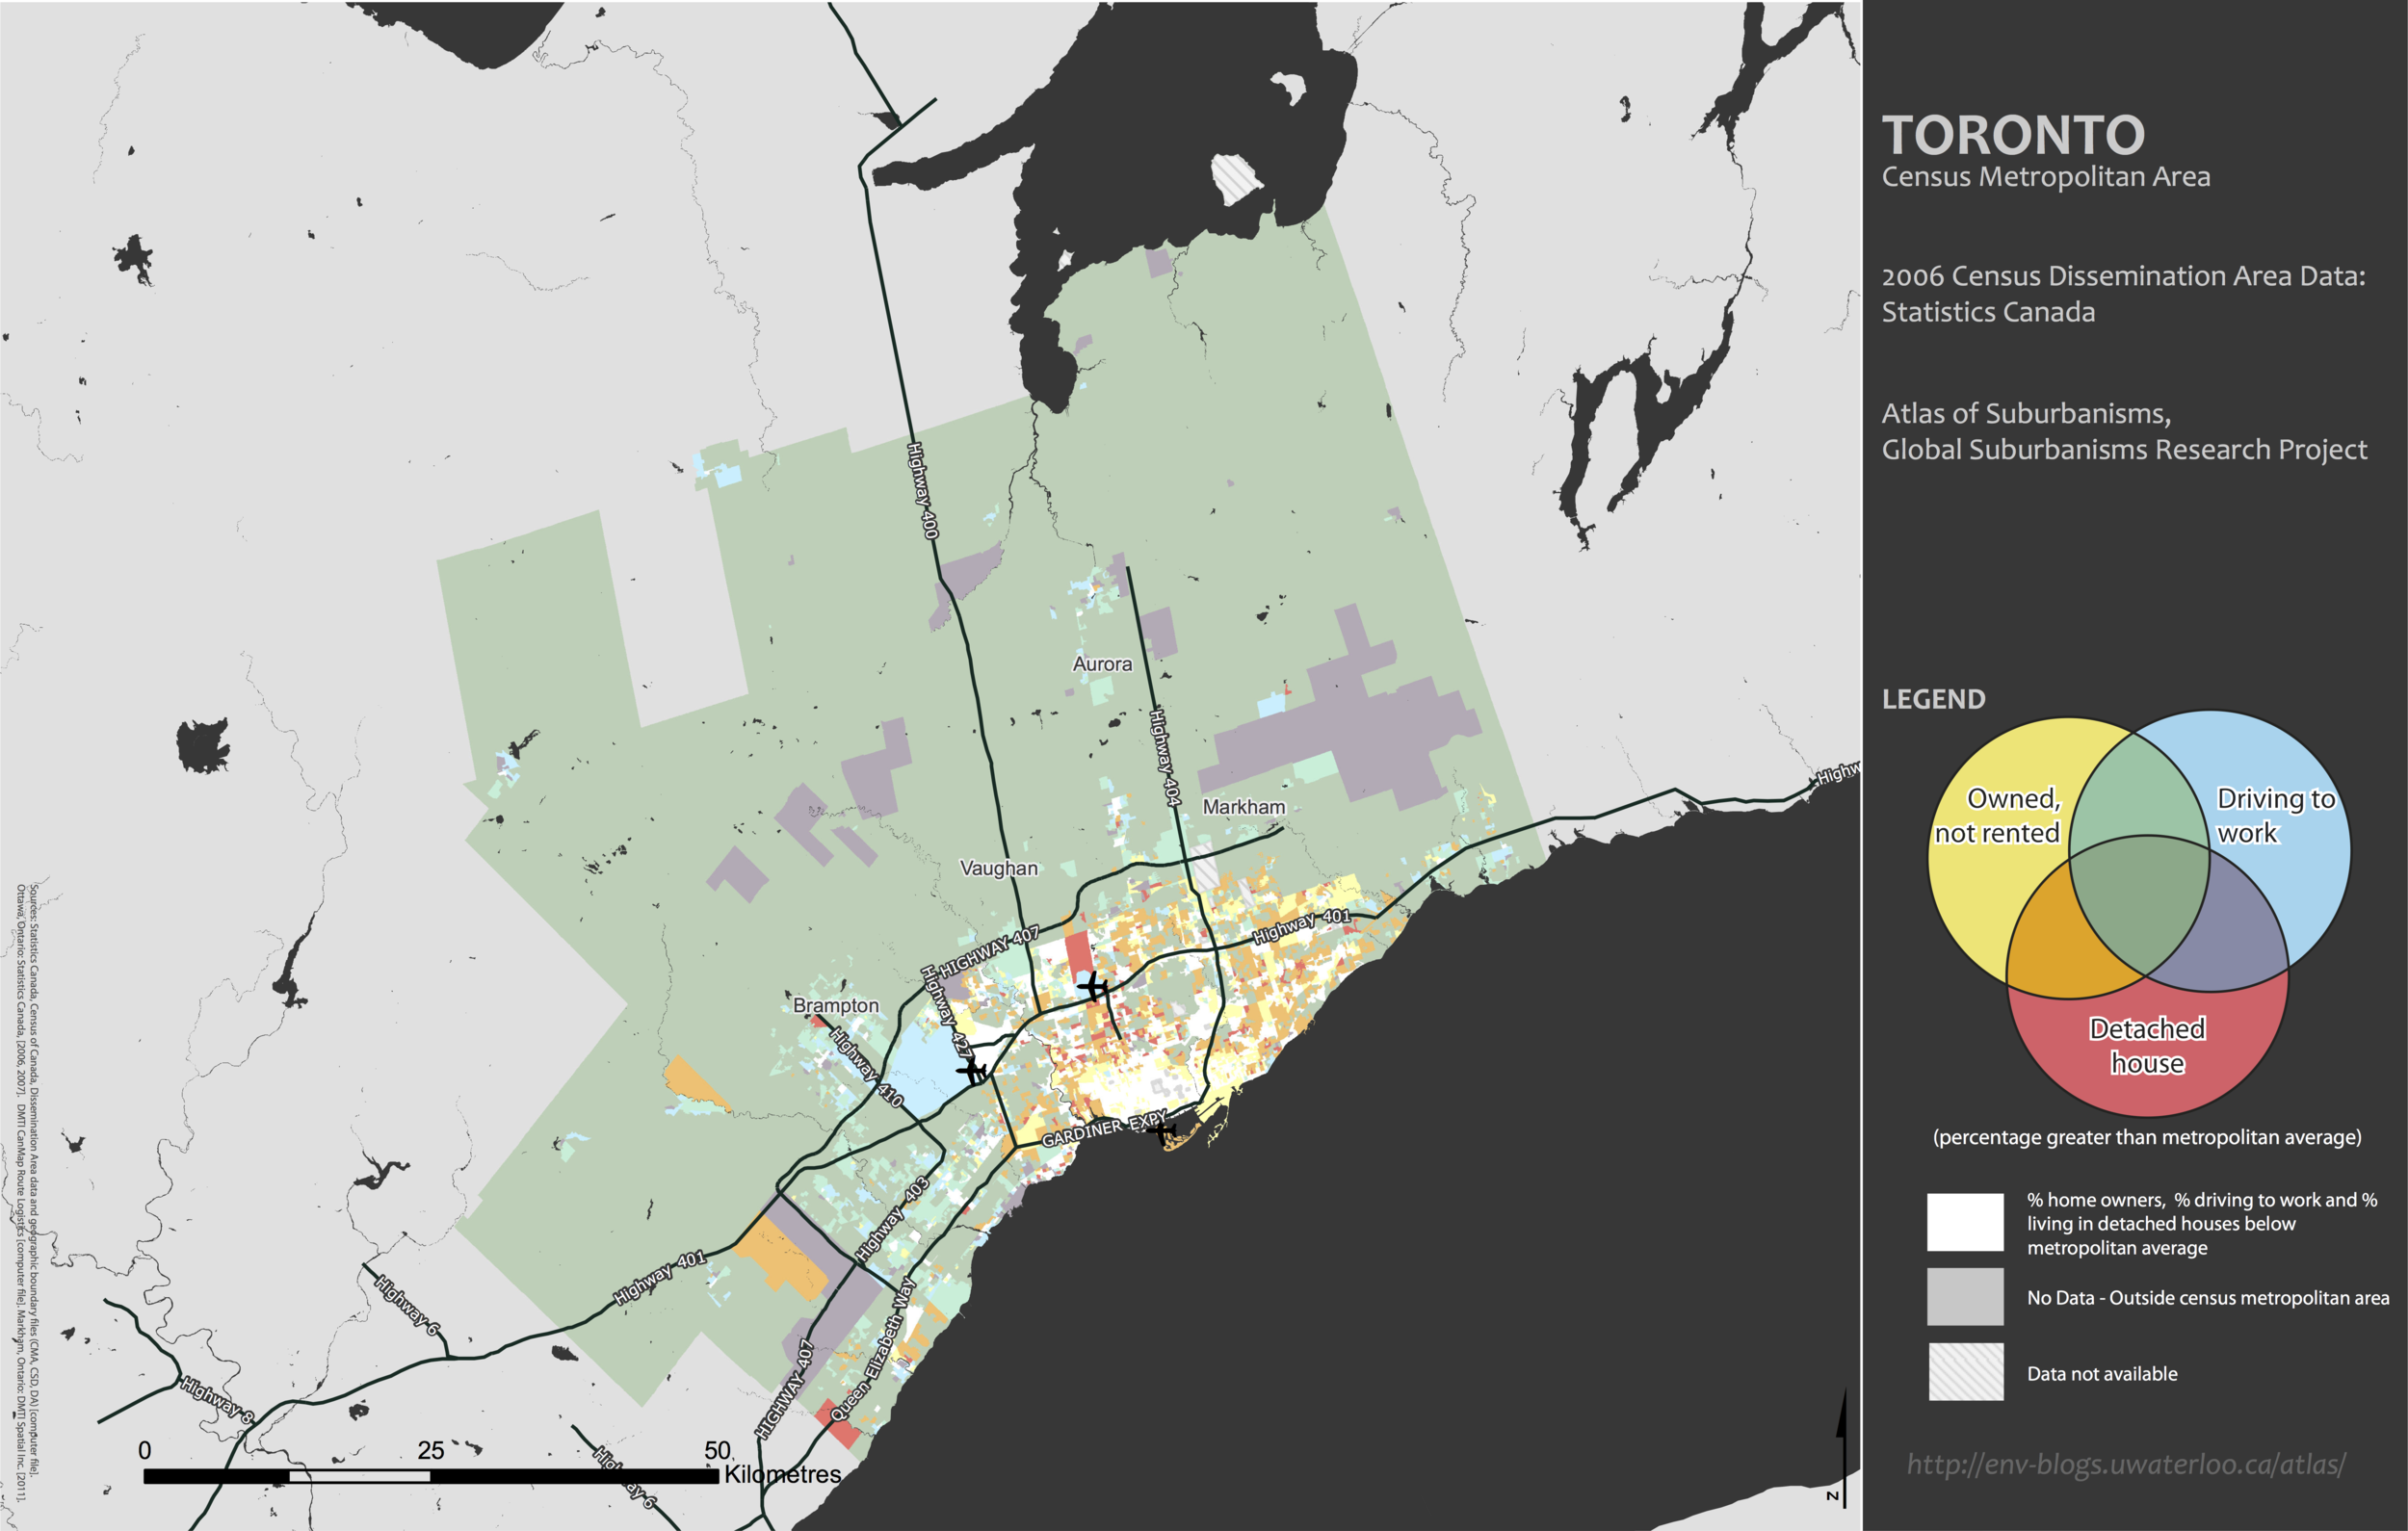 Toronto Suburbanism- Built form/Commute-mode dimension:homeownership, occupancy of detached single-family housing, and reliance on the private automobile